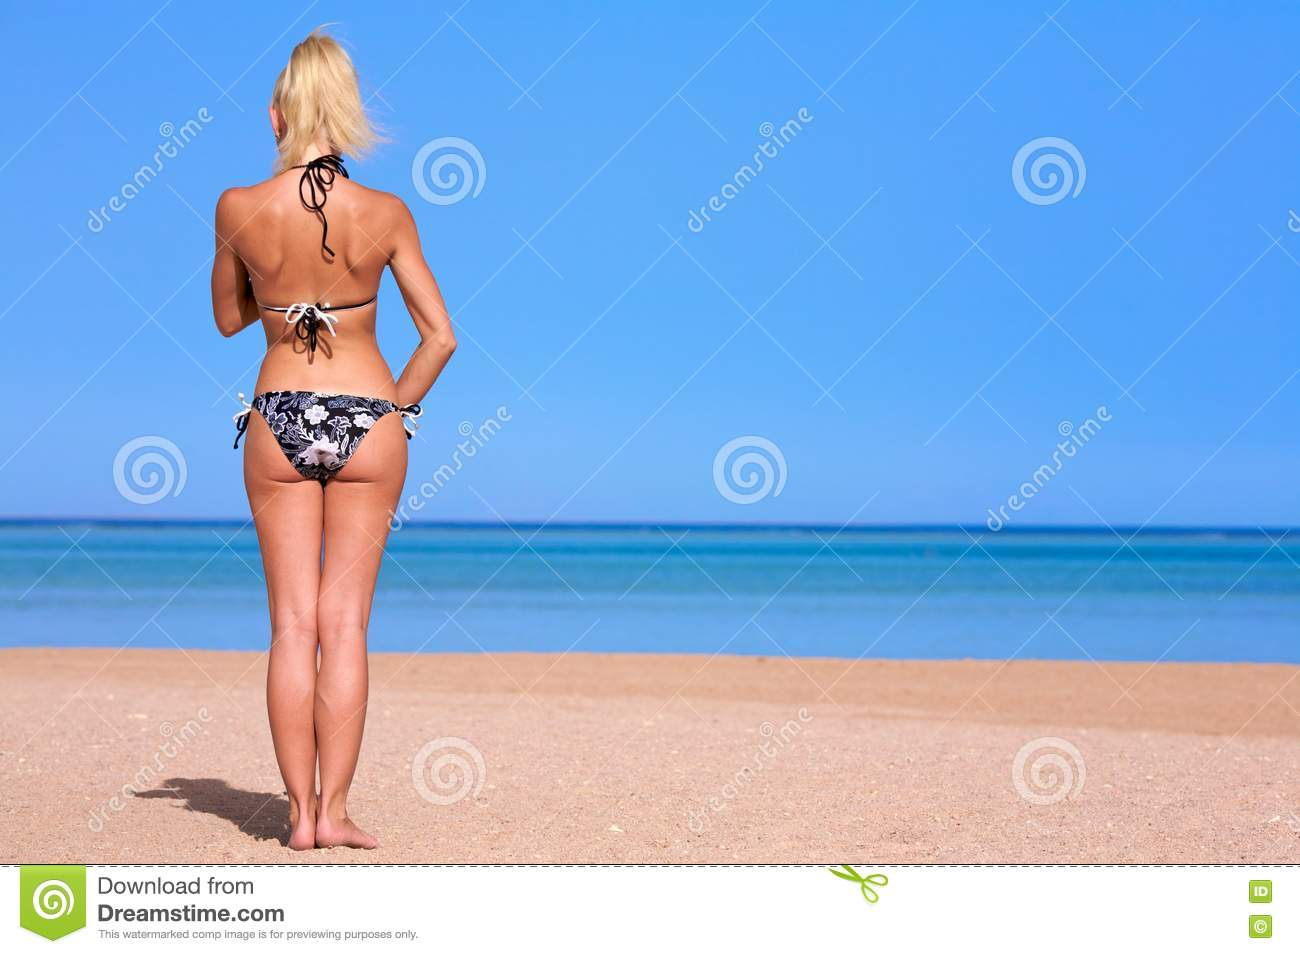 2987cd7ffa0 Free Stock Photography  Summer Back Picture. Image  4992707